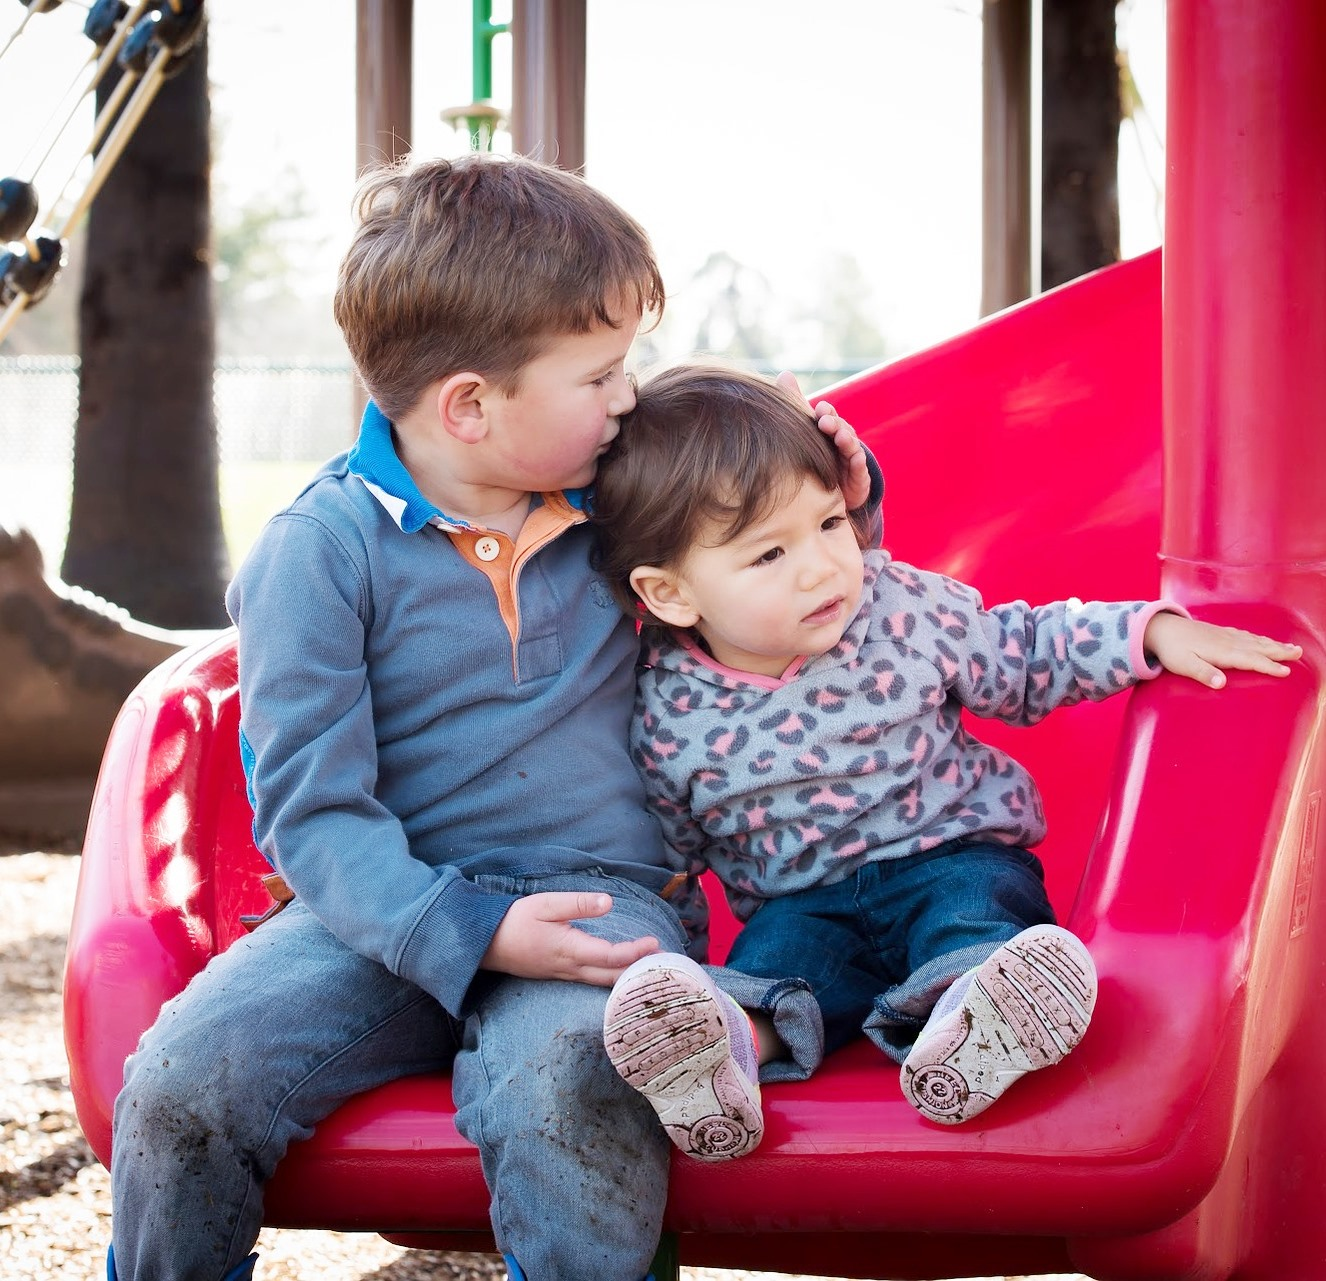 Two young children hugging at the bottom of a playground slide